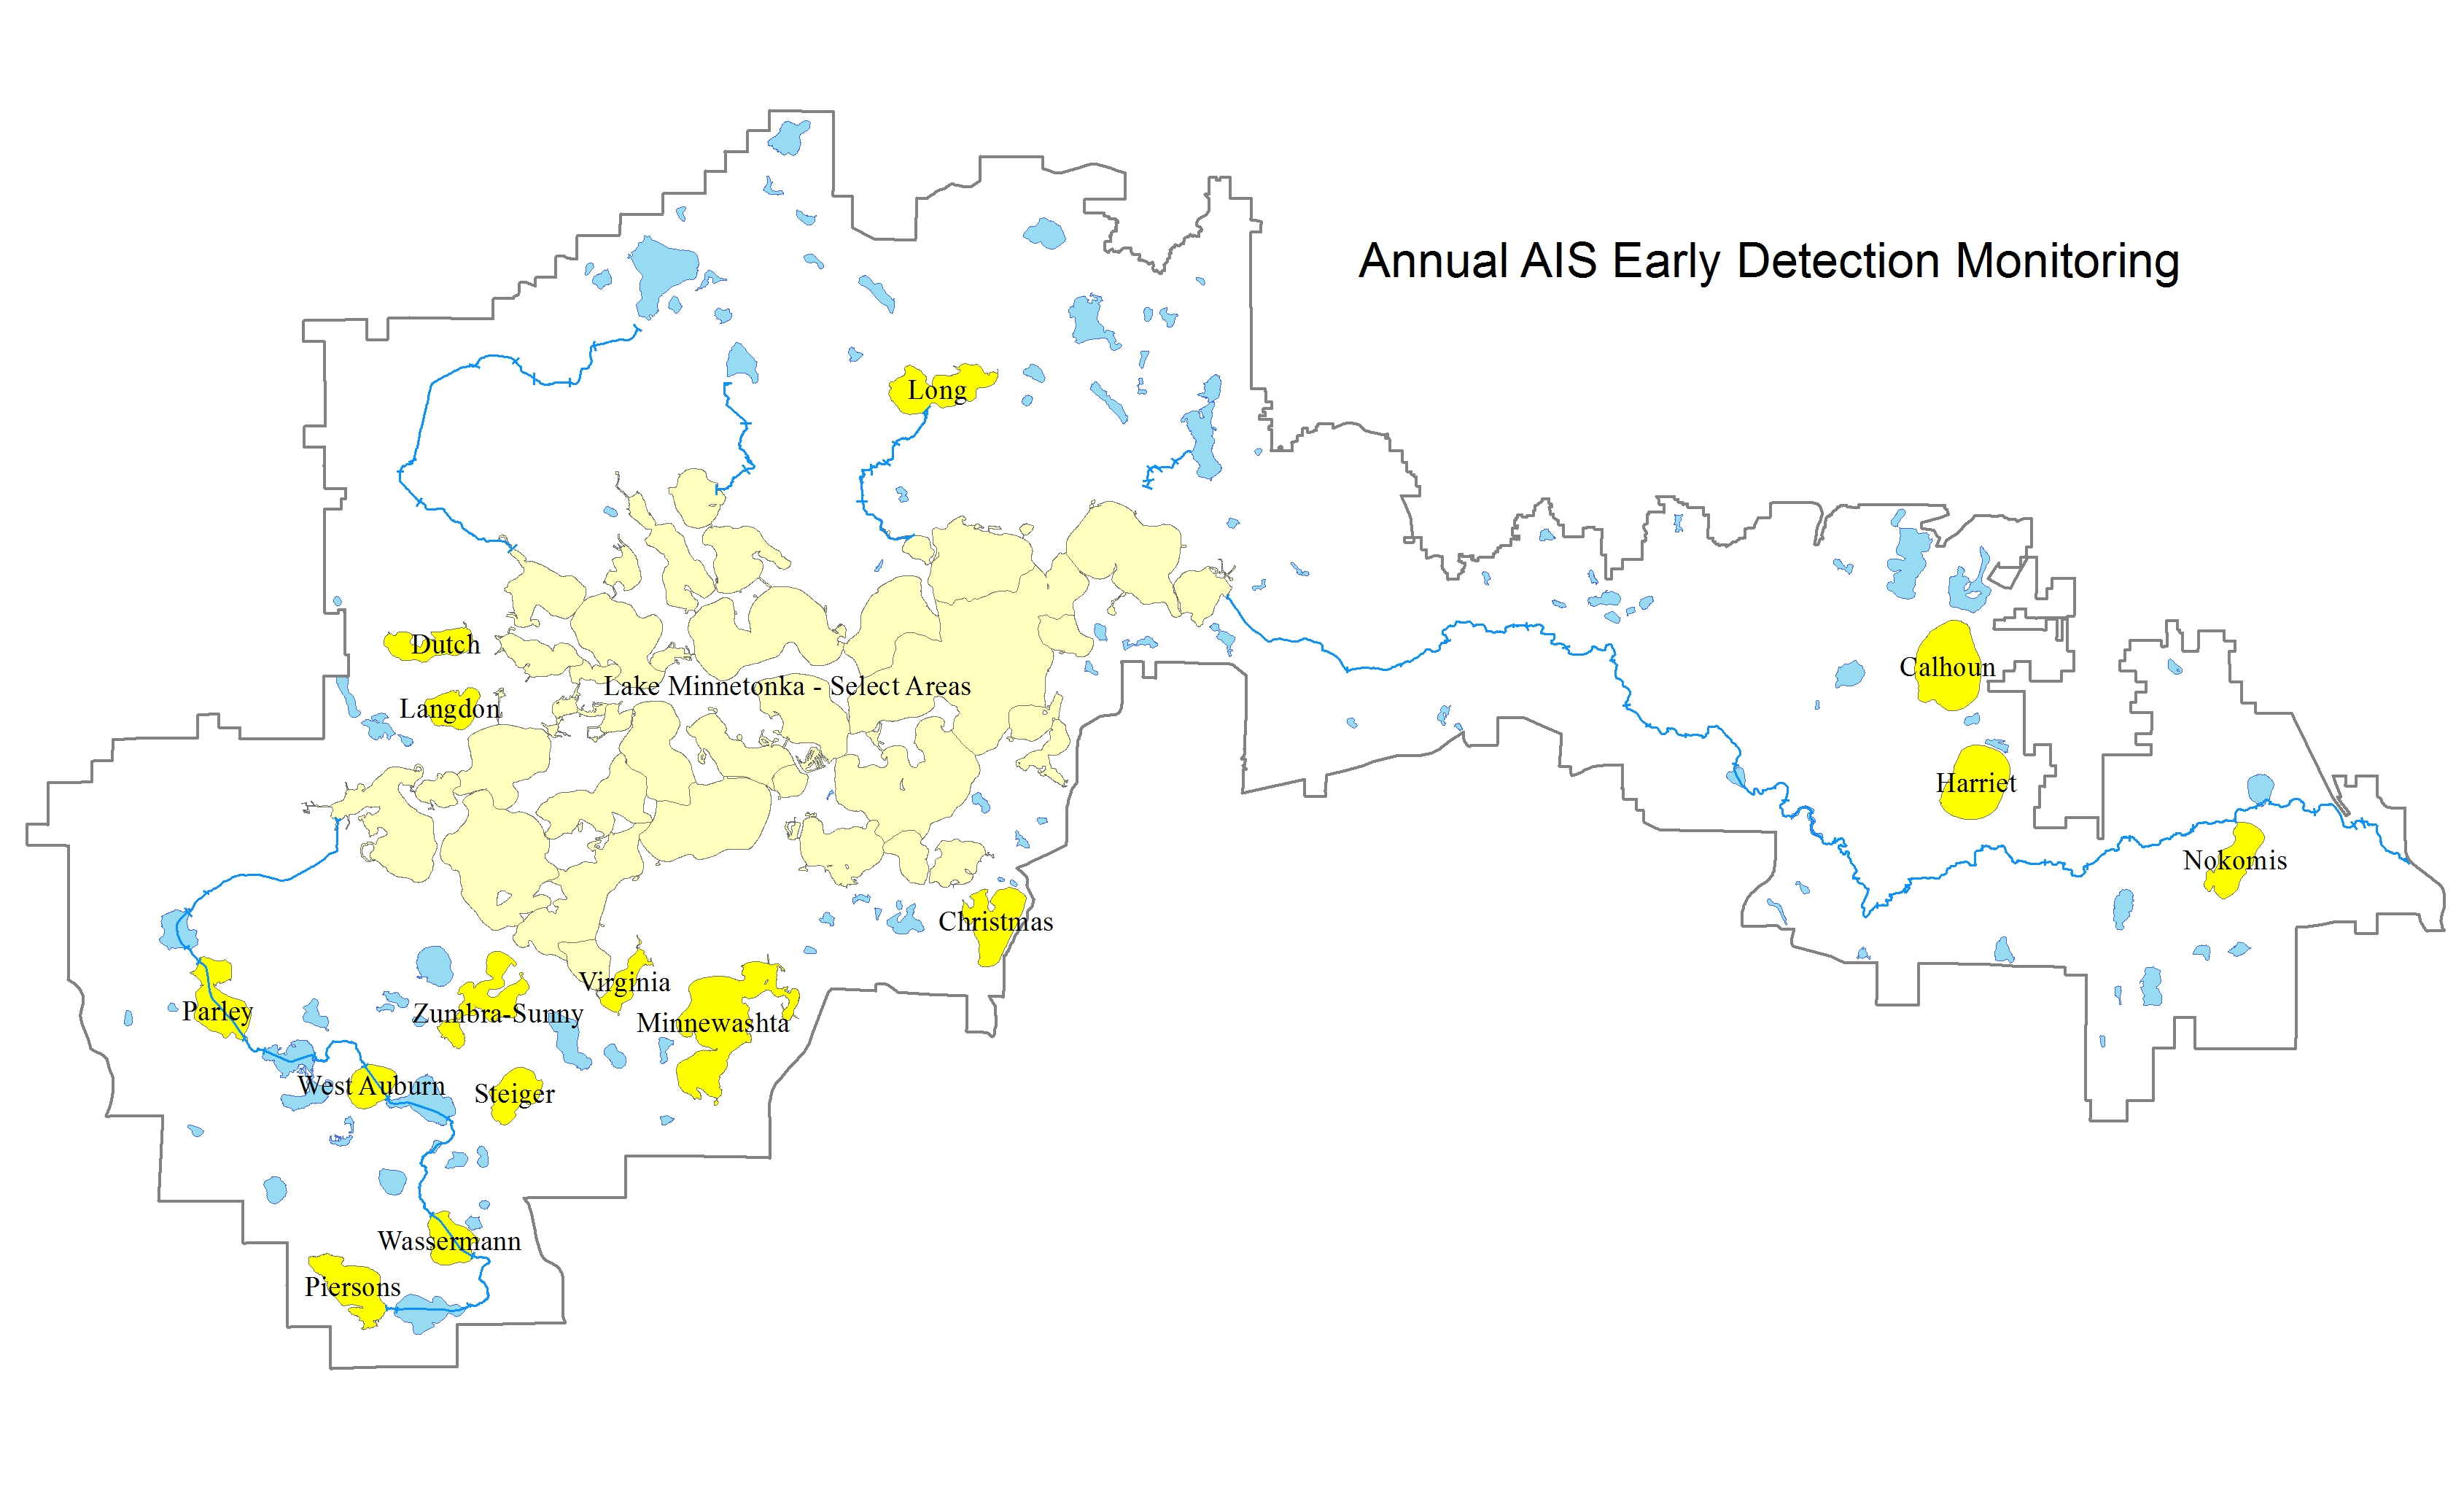 Annual AIS Early Detection Monitoring Map